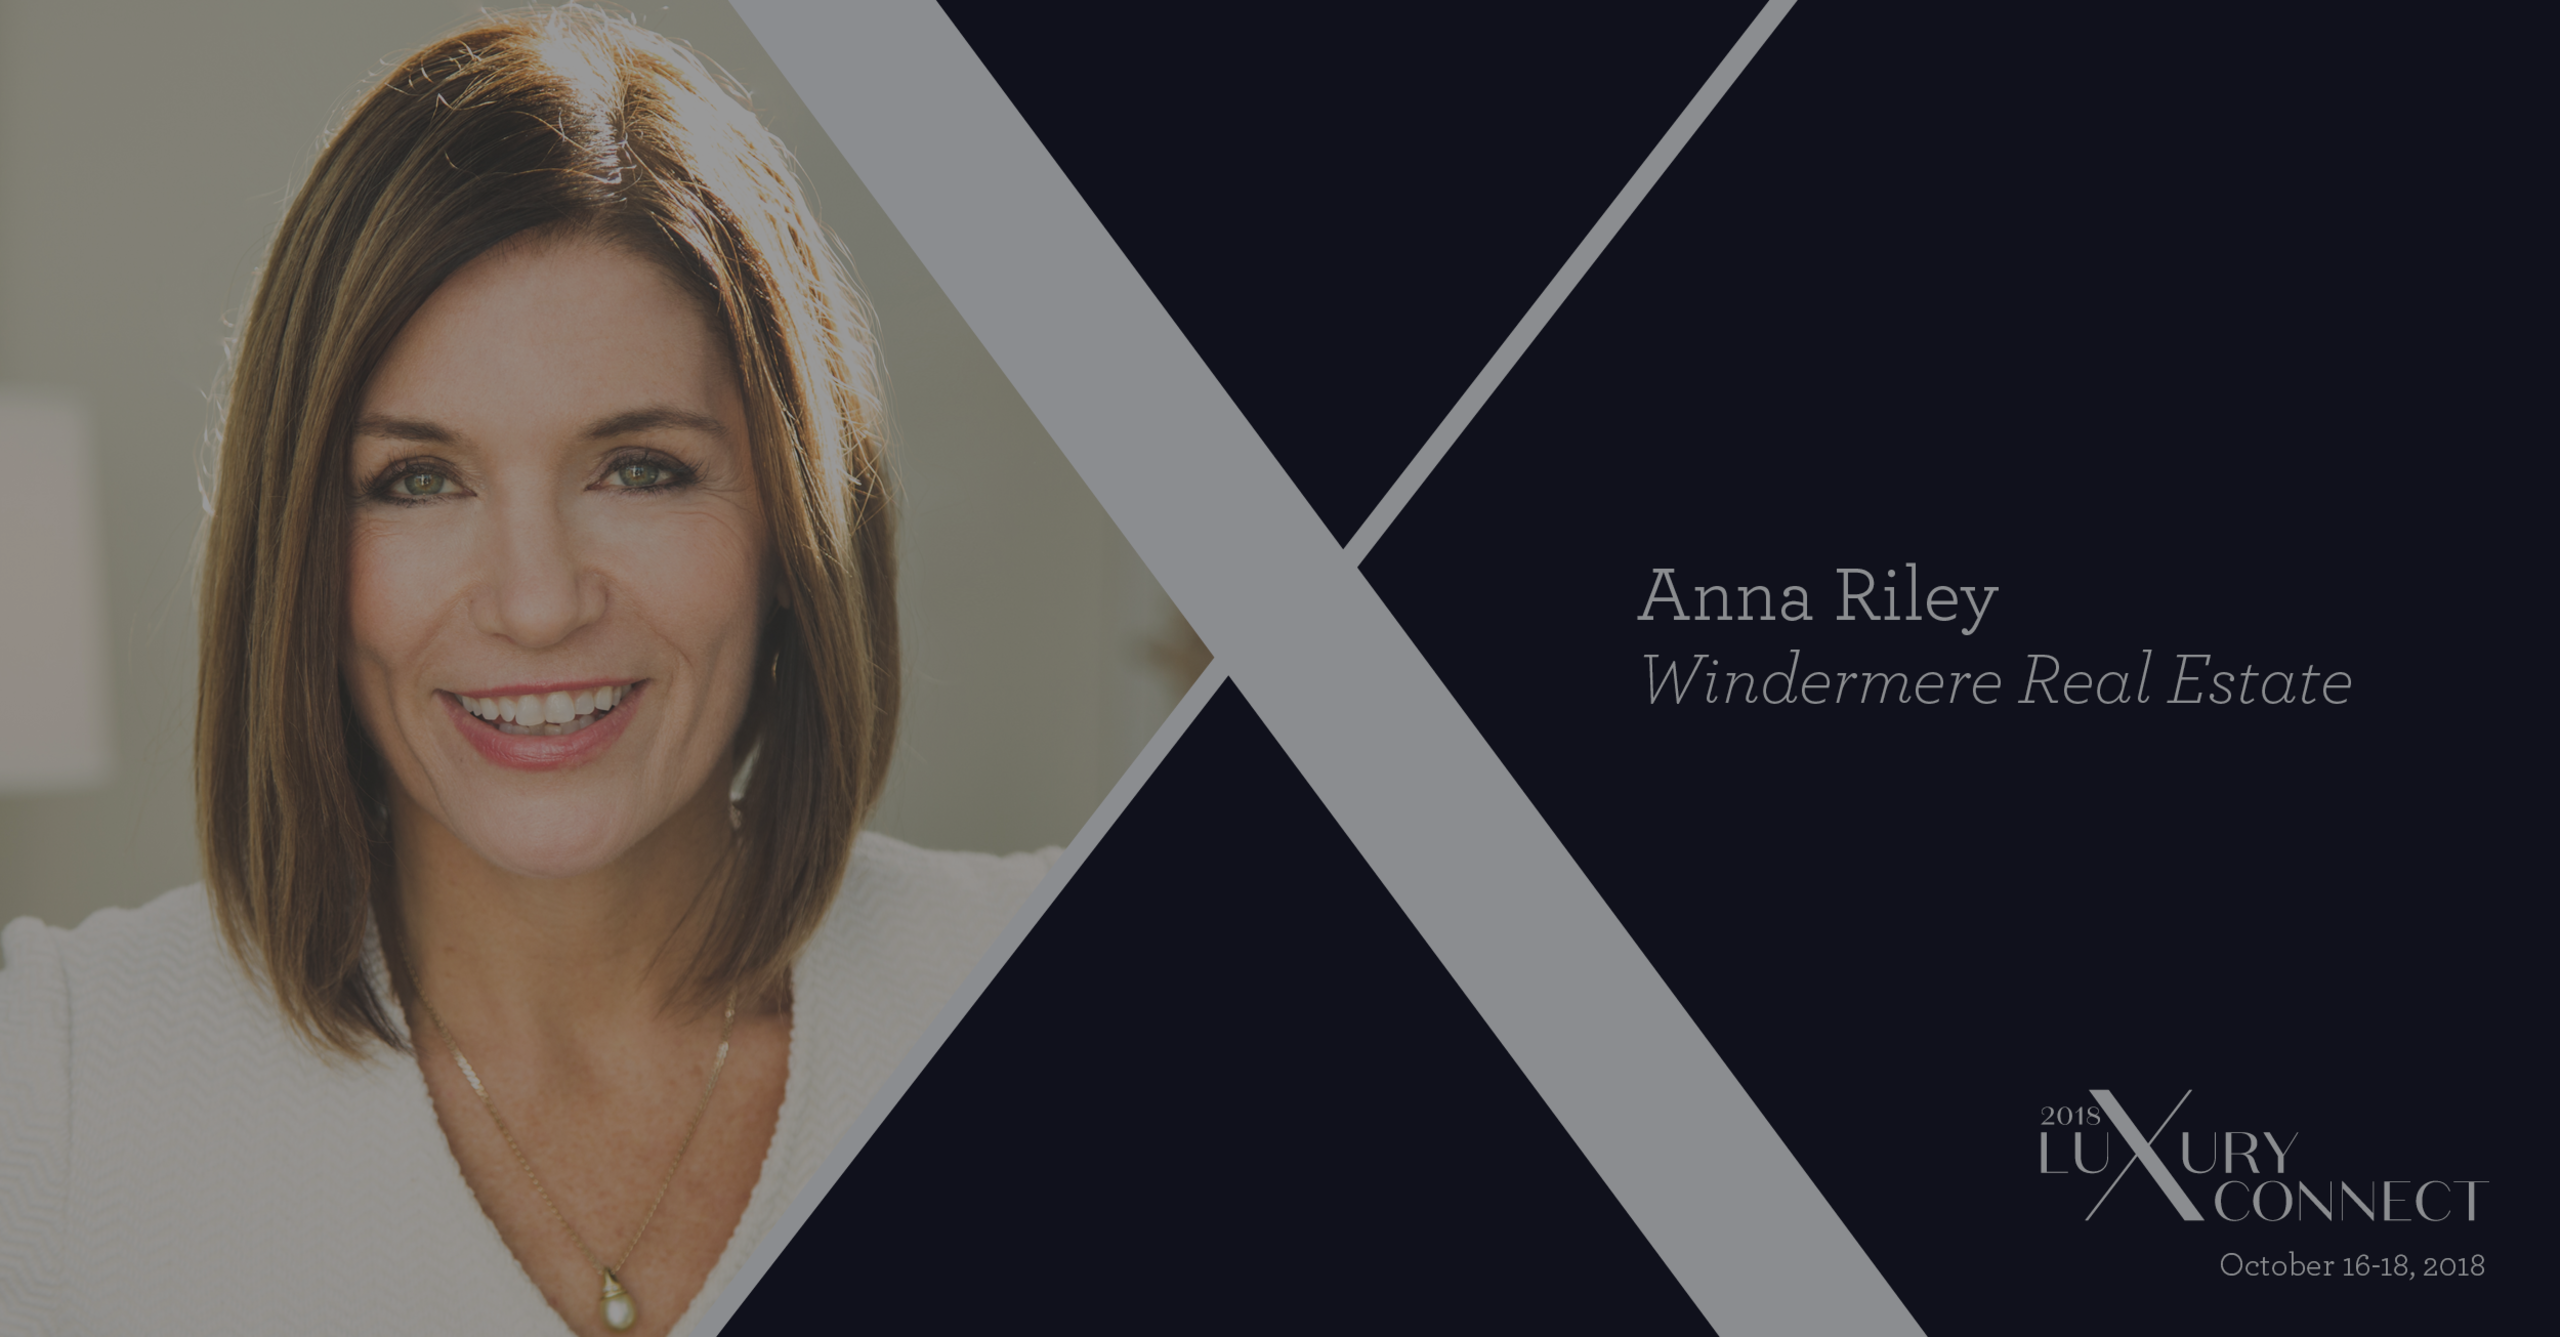 Luxury Connect: Anna Riley on how to better connect with clients